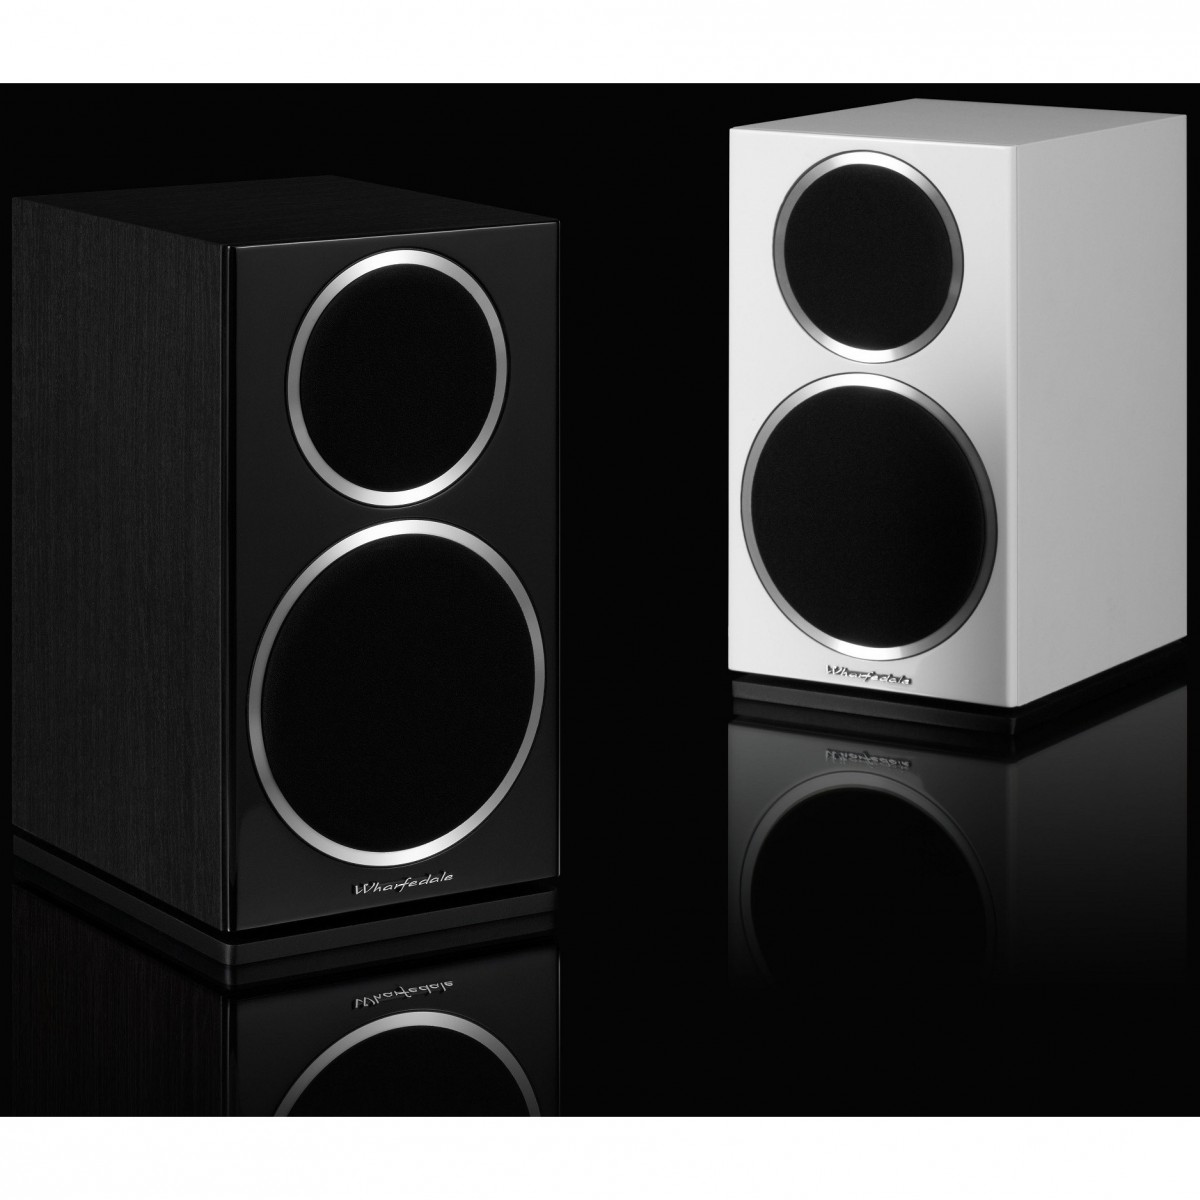 wharfedale-diamond-220-speakers-white-and-black_1